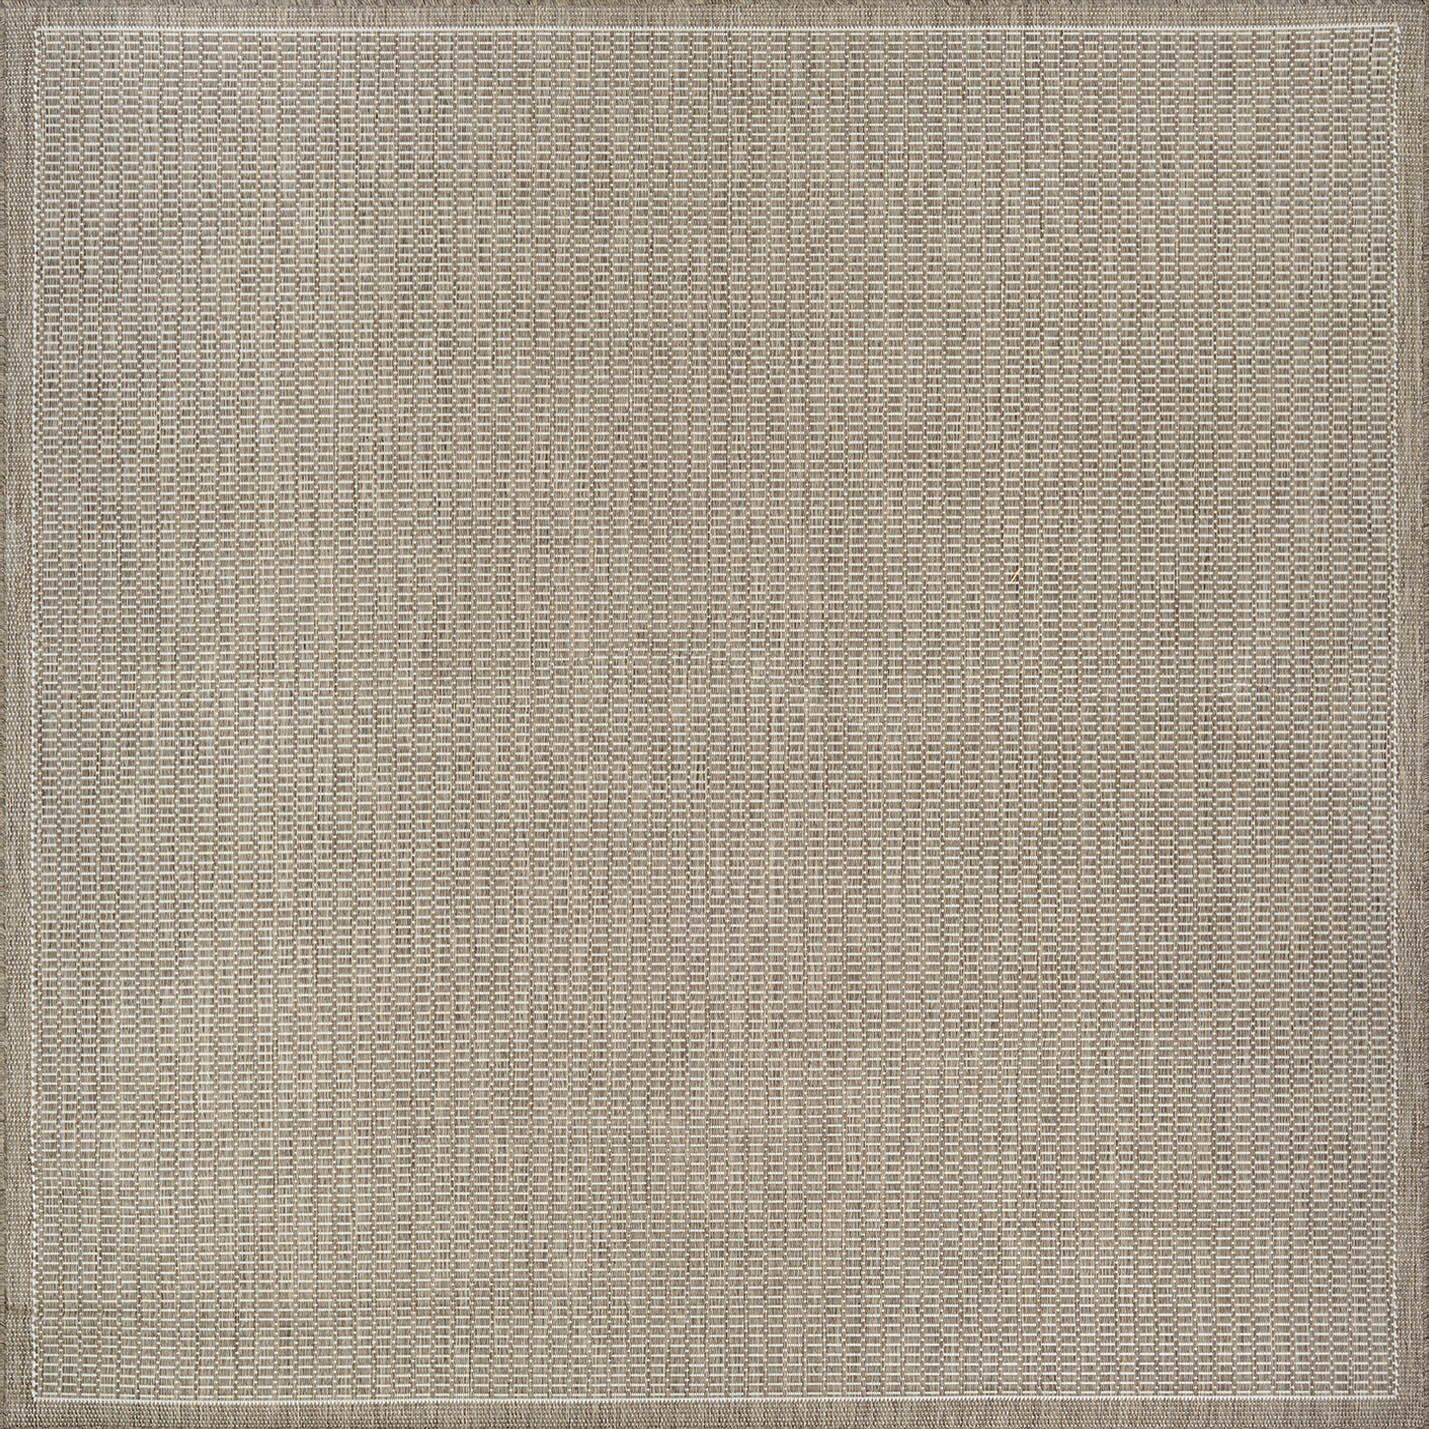 Westlund Champagne/Taupe Indoor/Outdoor Area Rug Rug Size: Square 7'6